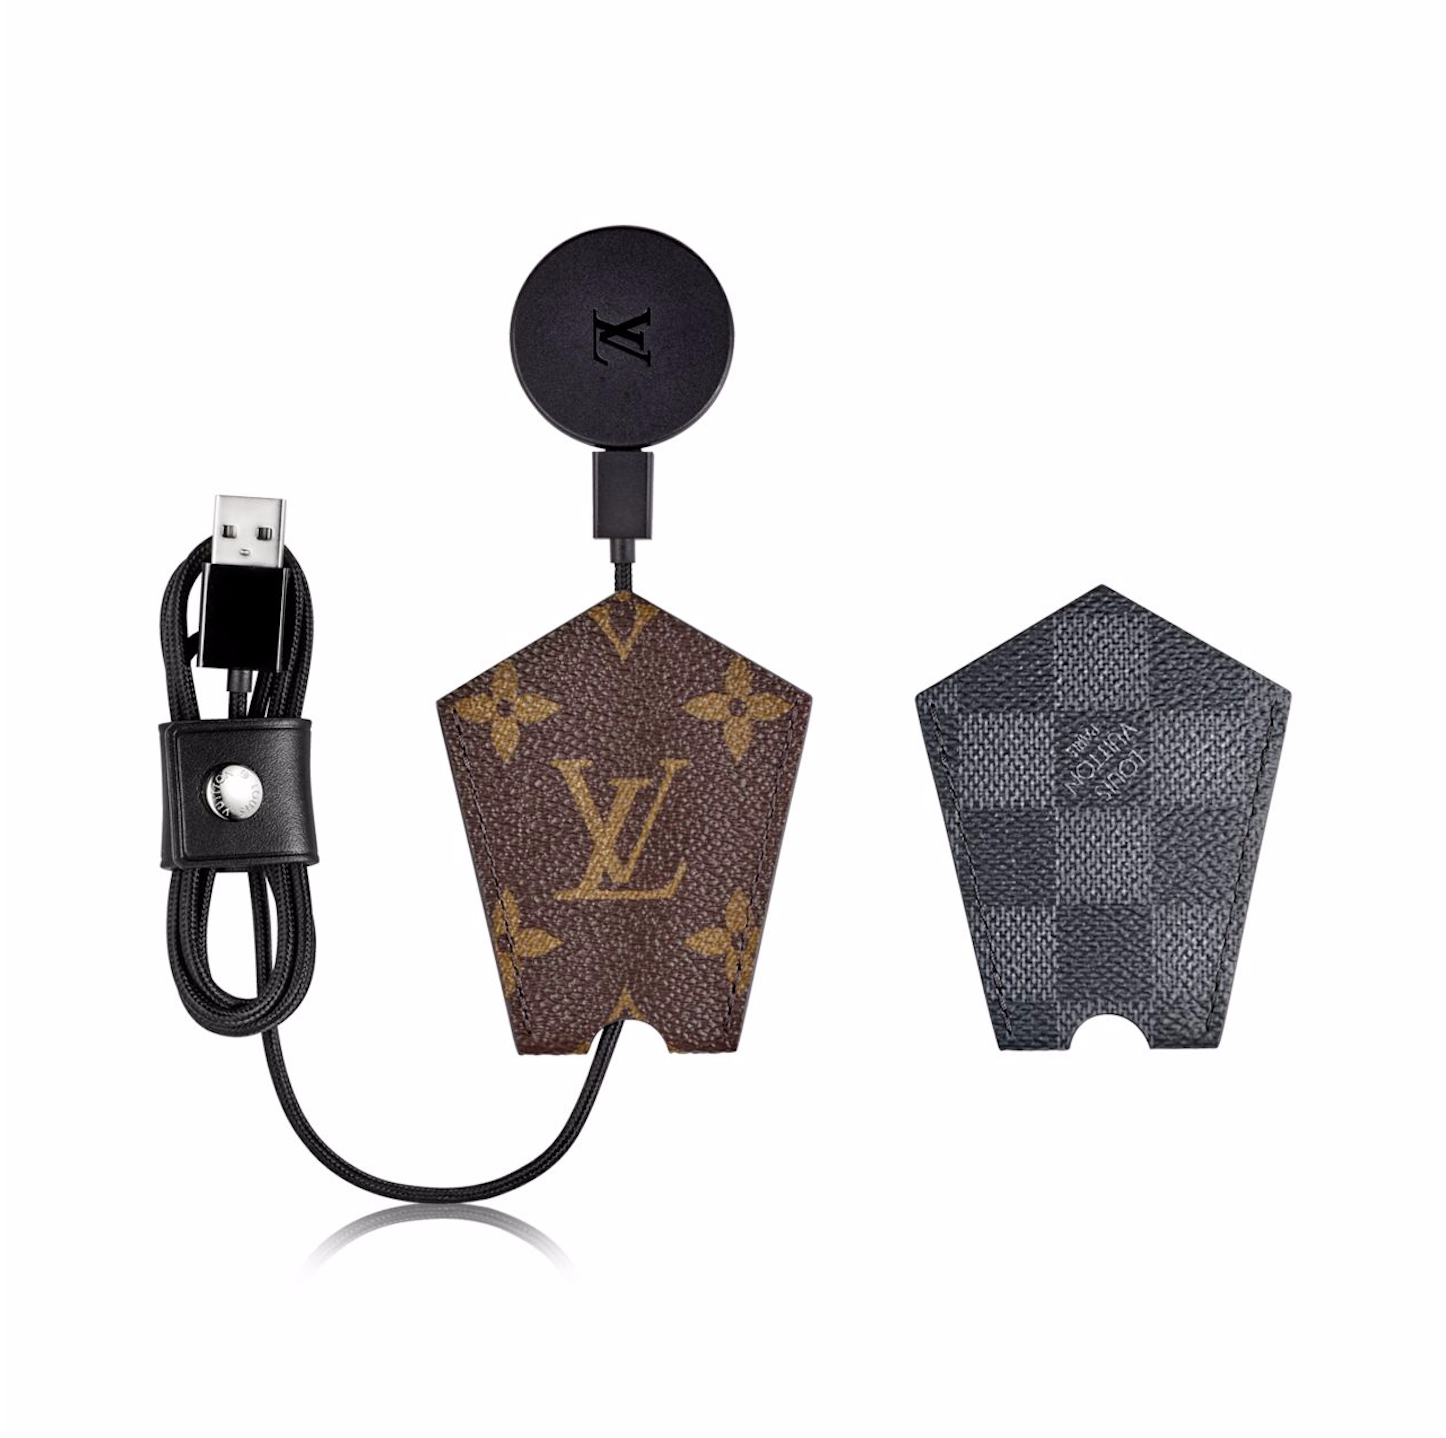 LouisVuitton SmartWatch Charger